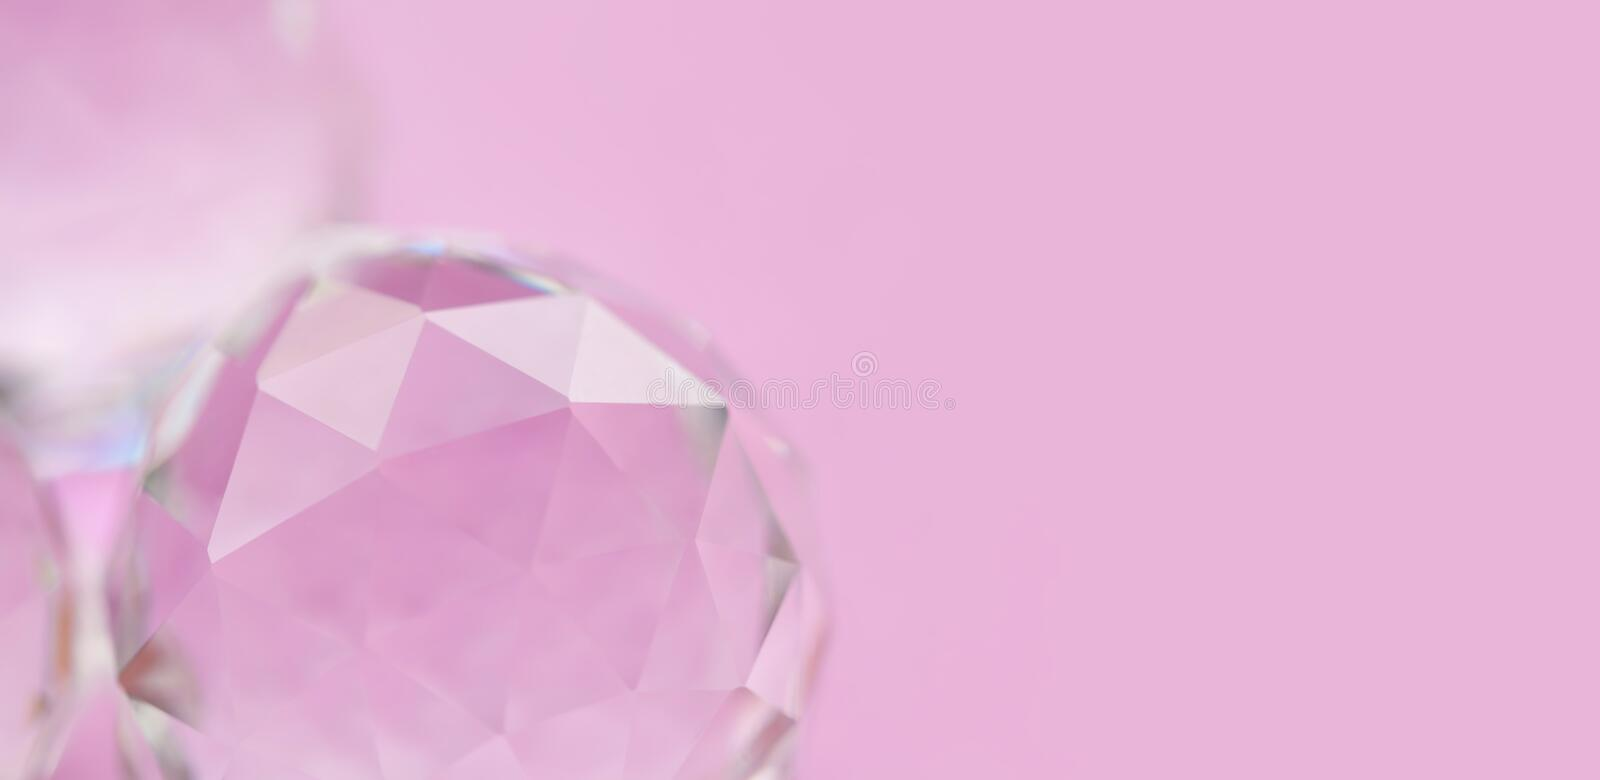 Abstract diamond stone on pink background. Beautiful crystal gem, geometric polygon shapes. Macro view, shallow depth of royalty free stock photography